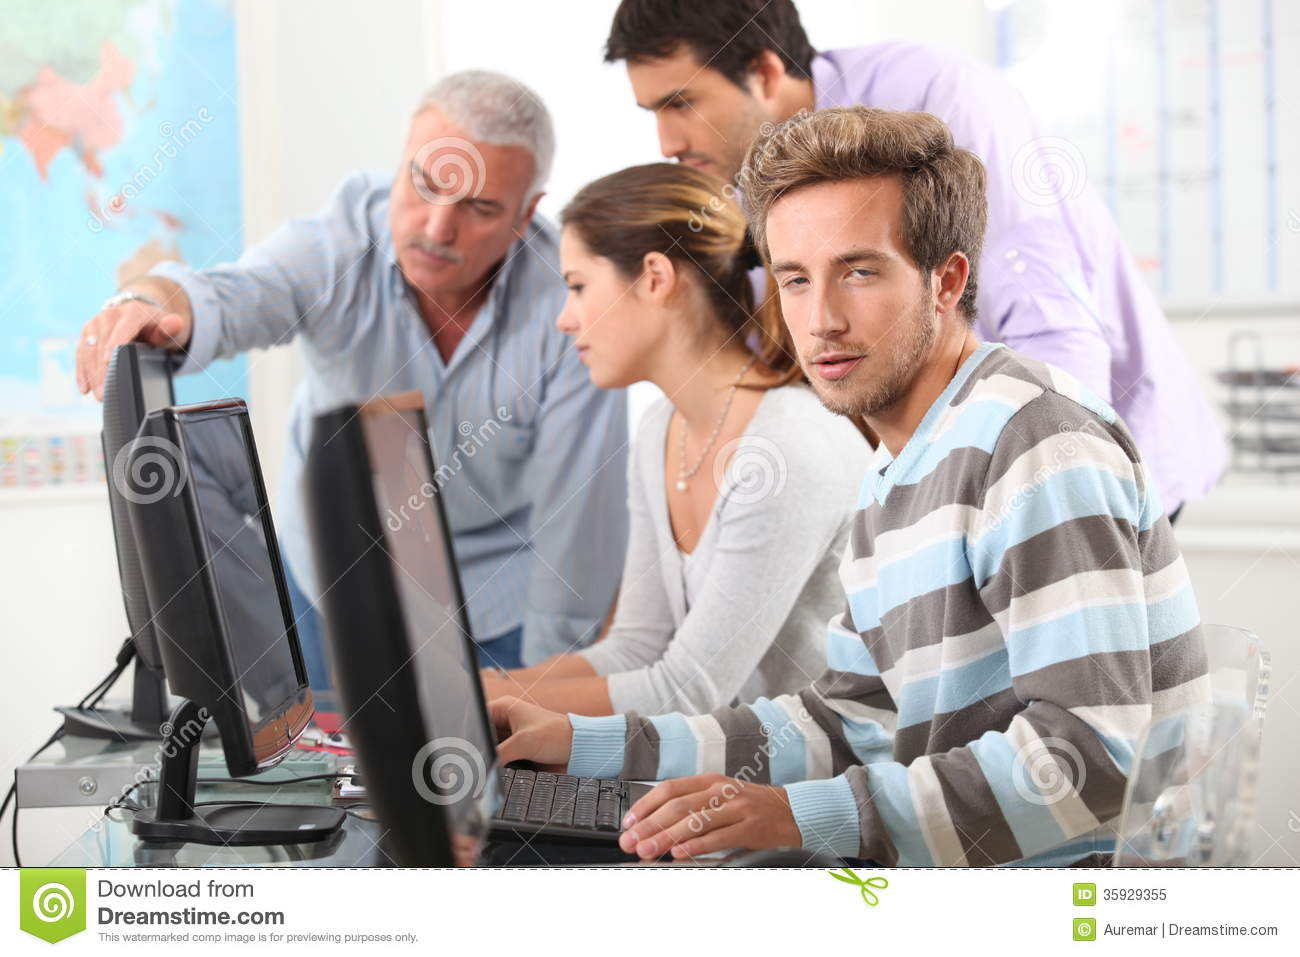 People Working On Computers Stock Image - Image: 35929355